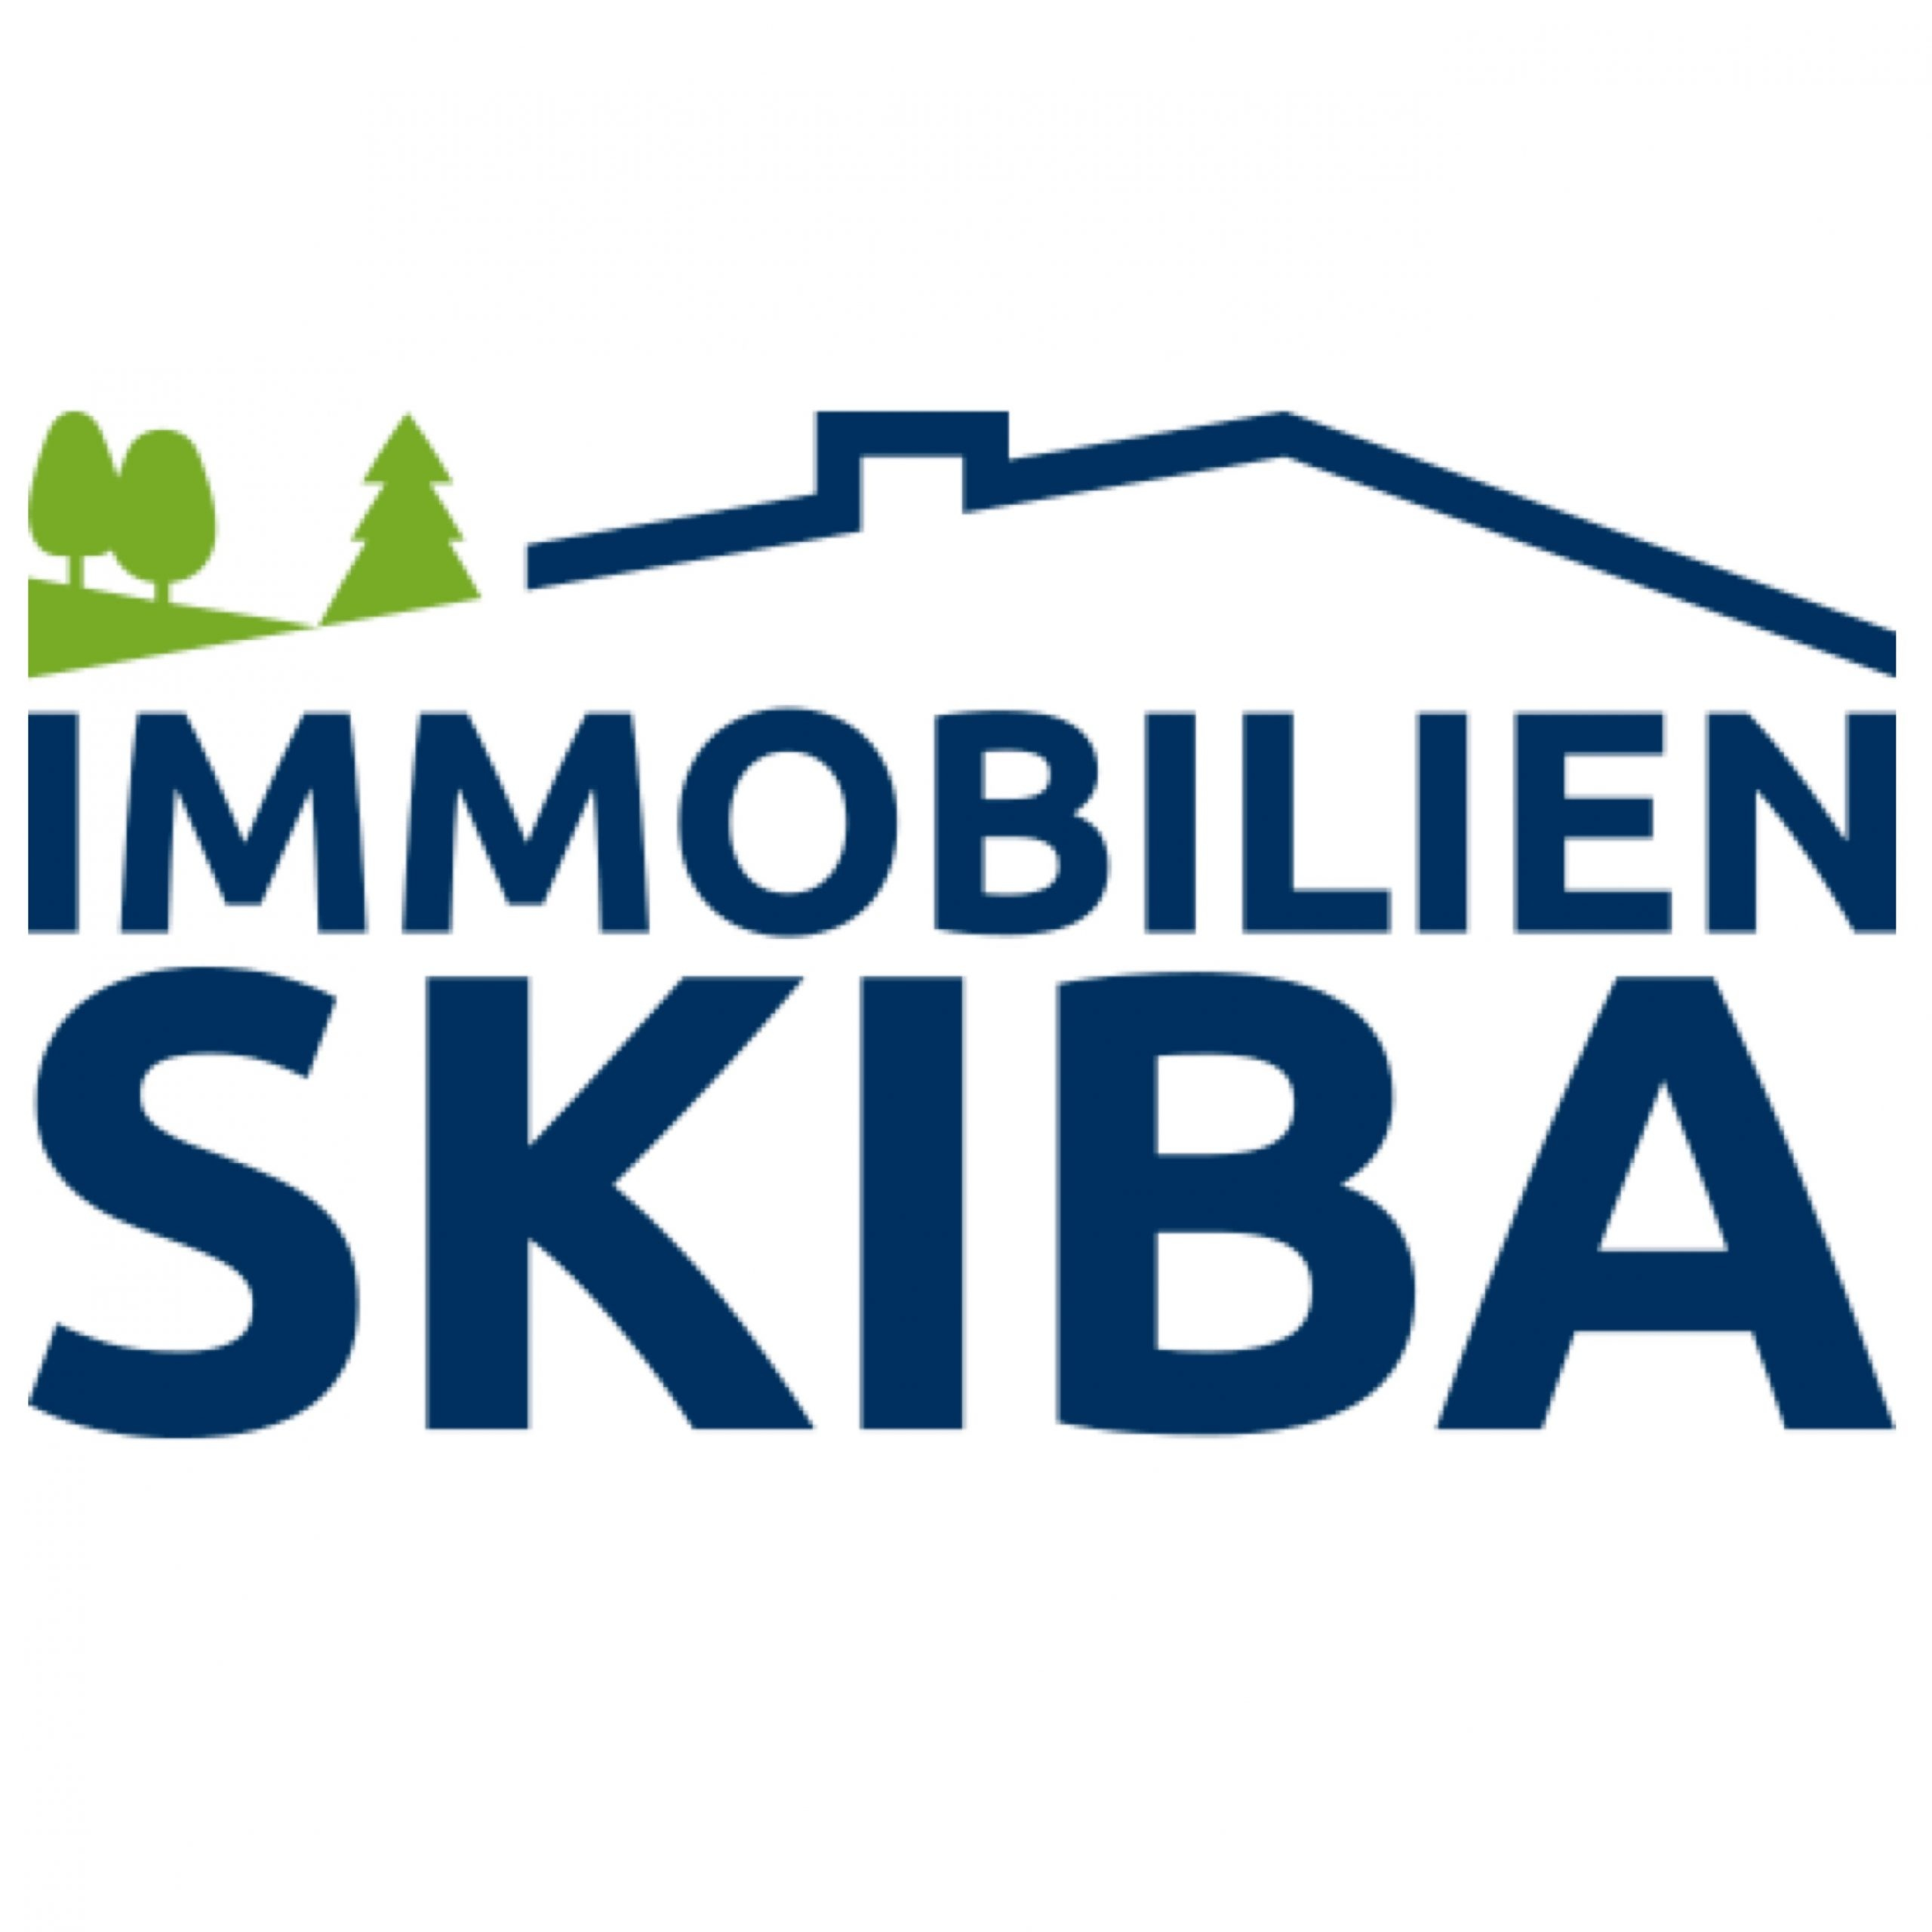 logo skiba immobilien weiss scaled